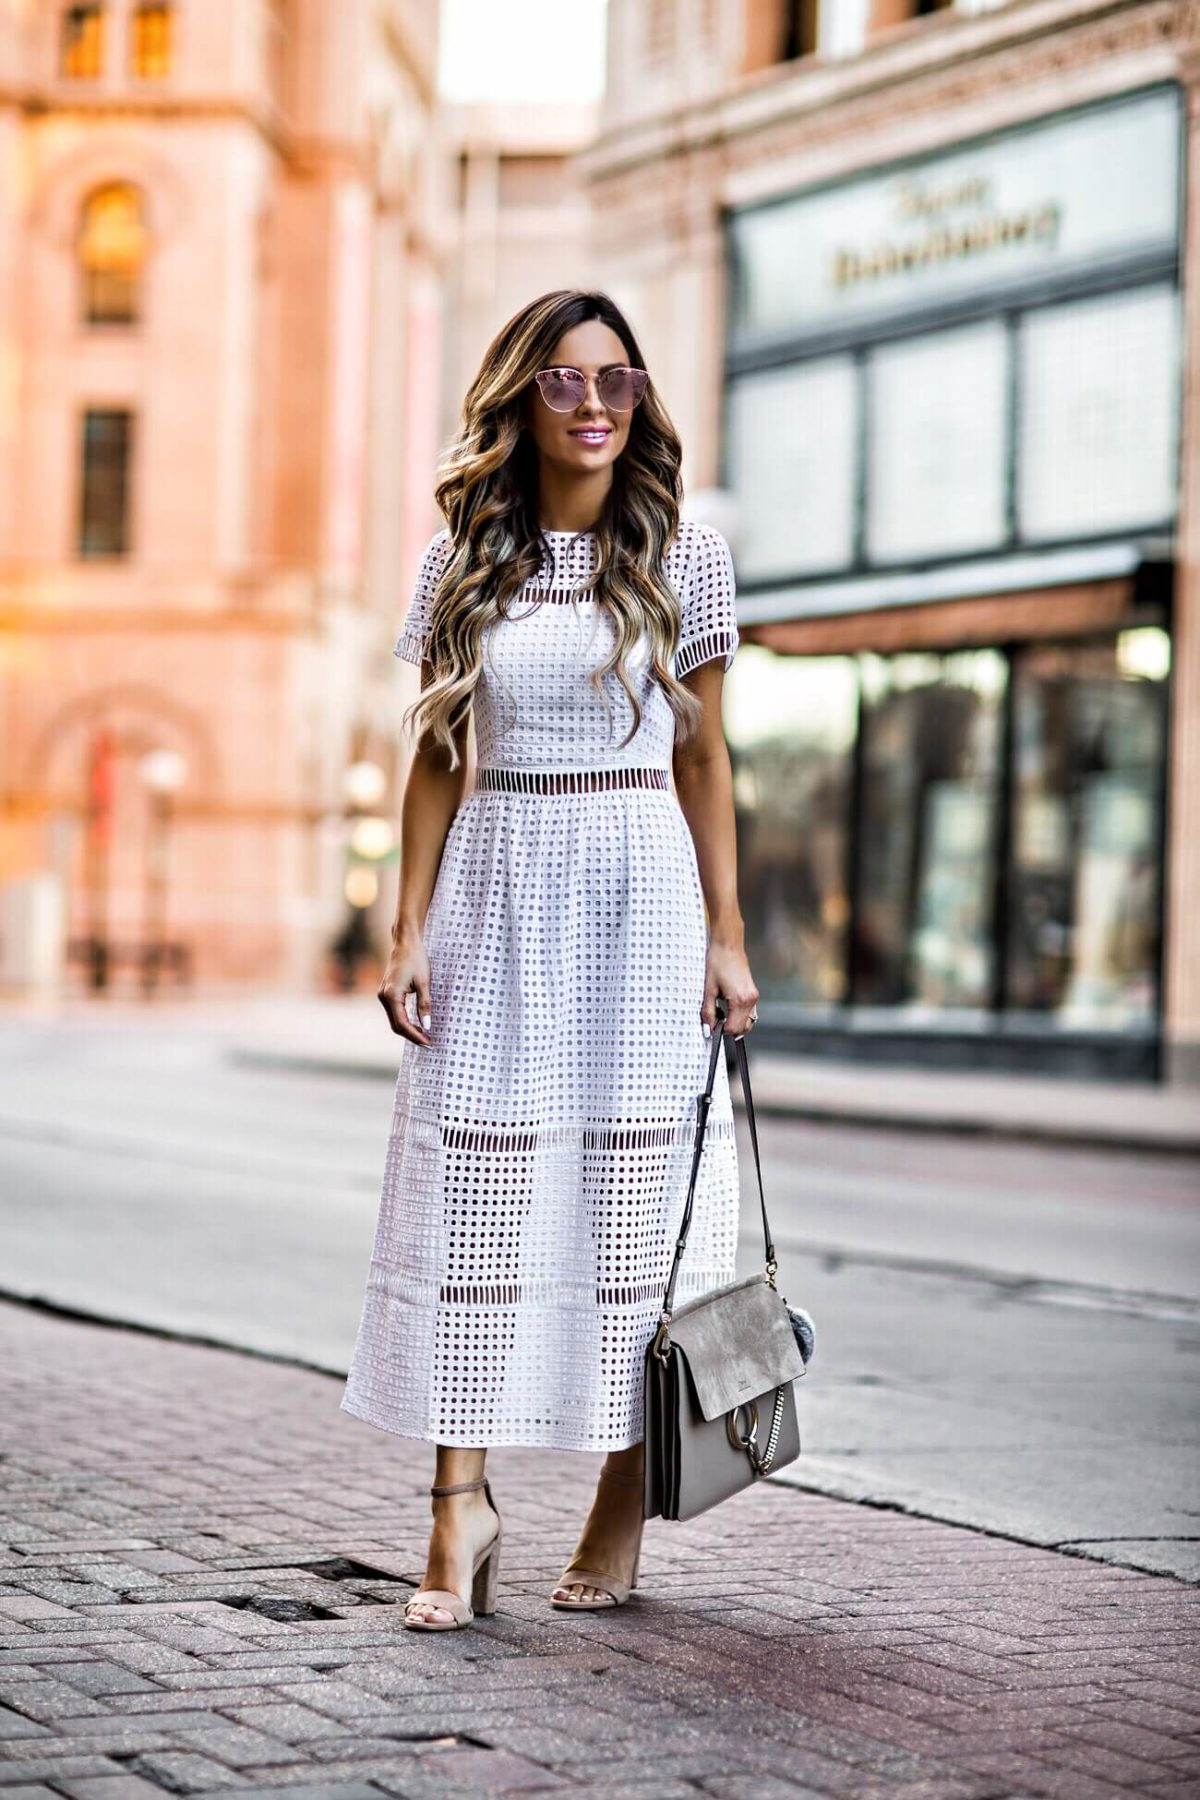 Fashion Do S: 10 Fashion Do's And Don't's Women Should Consider